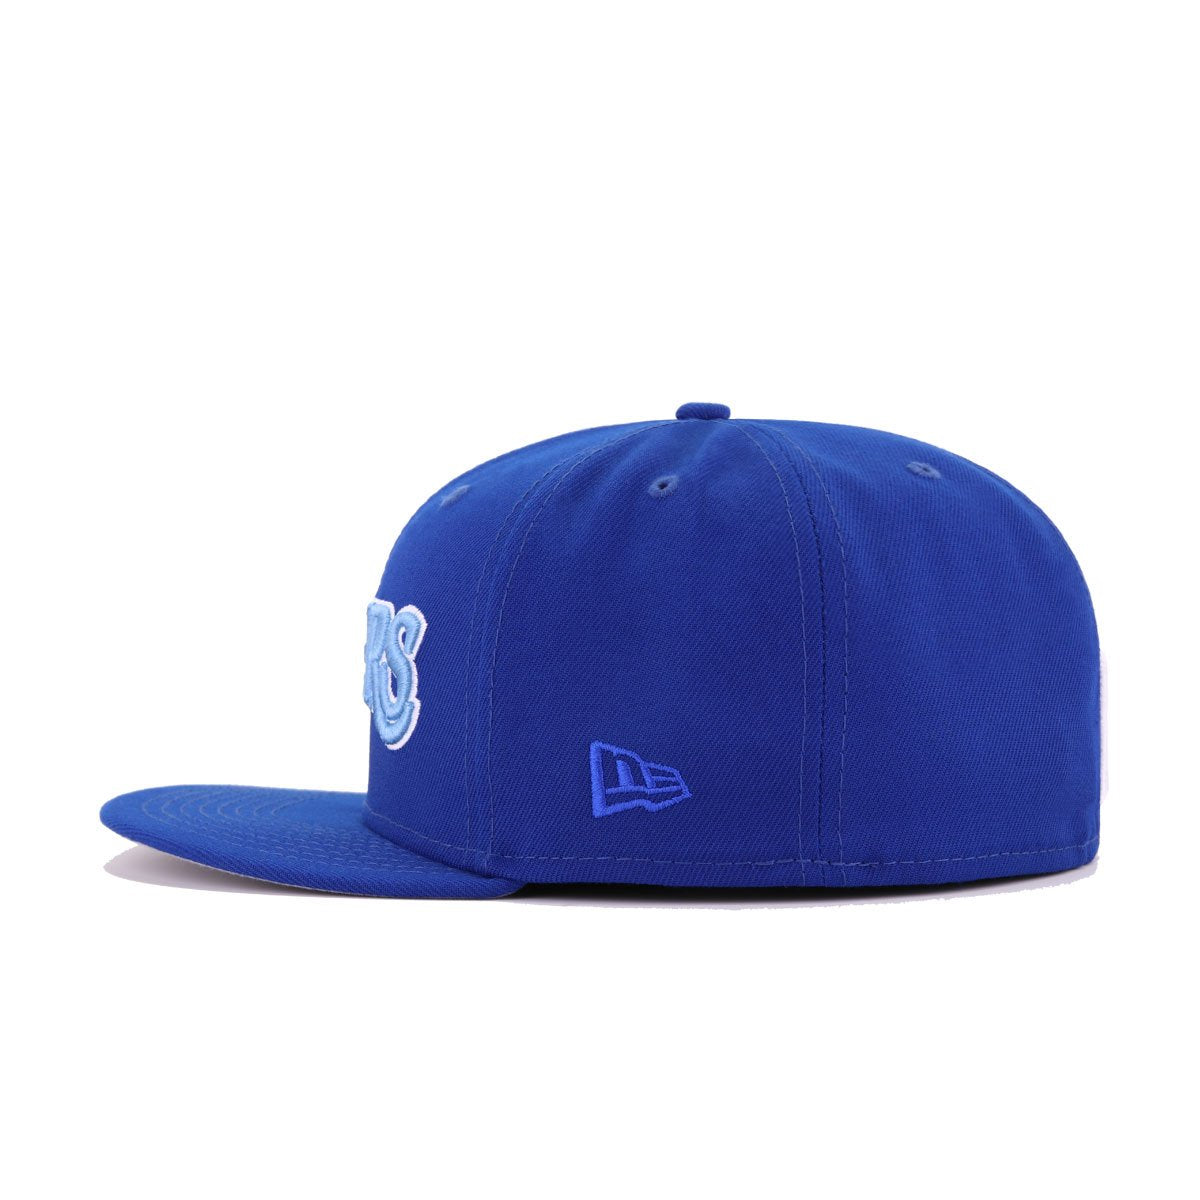 Los Angeles Lakers Light Royal Blue New Era 59Fifty Fitted